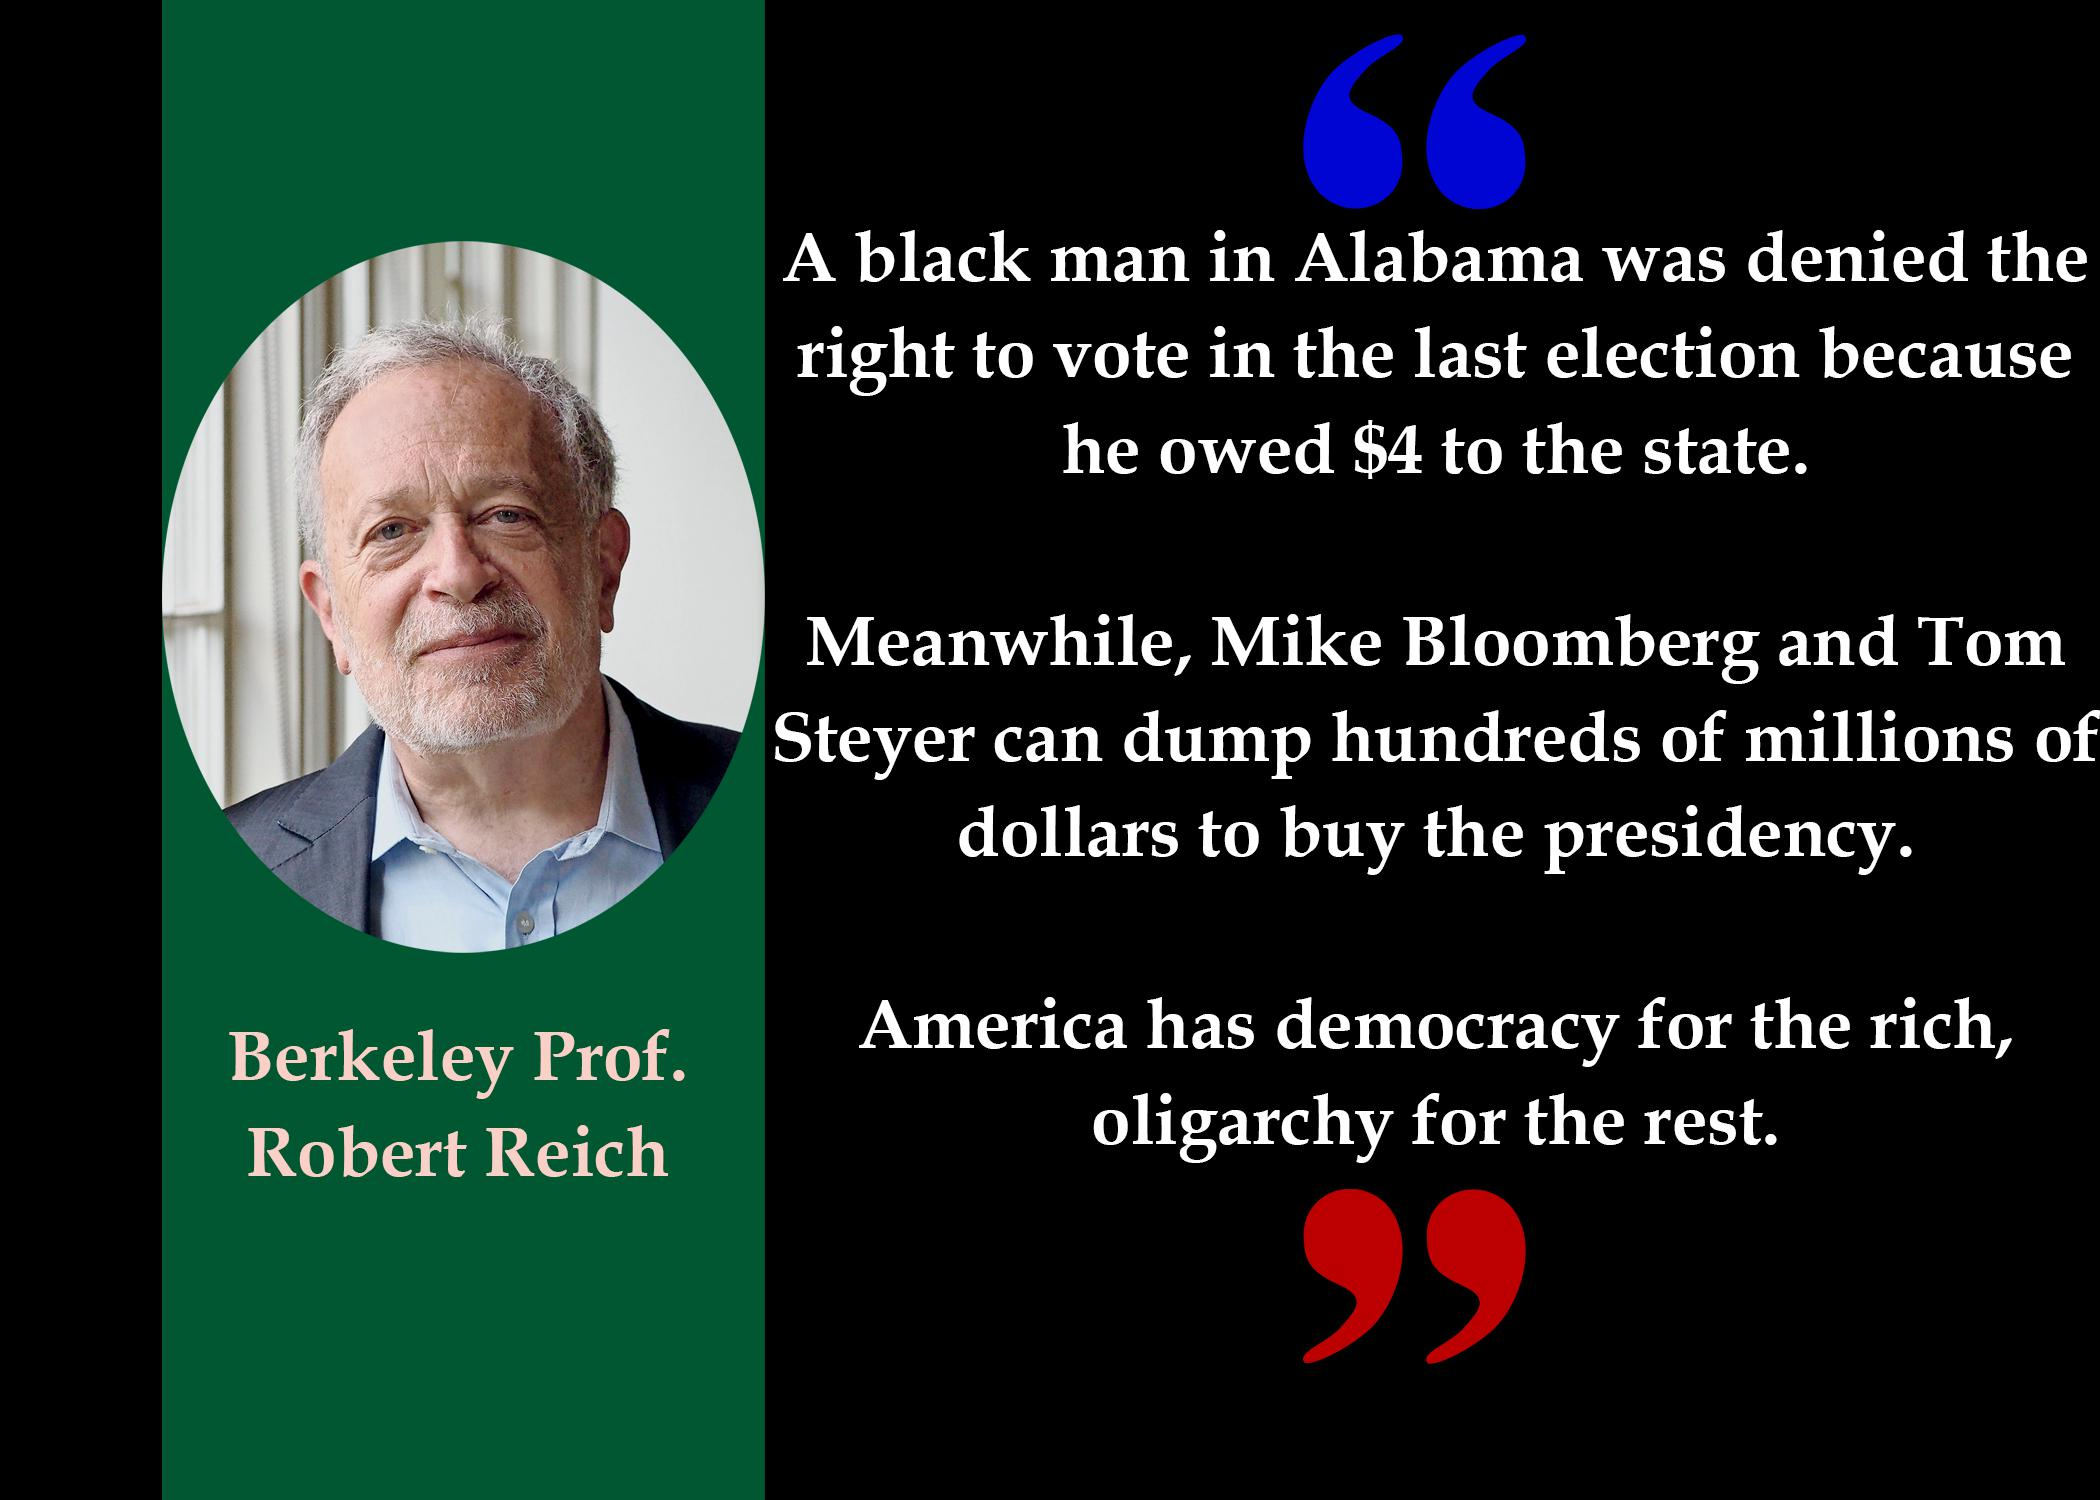 66 A black man in Alabama was denied the right to vote in the last election because he owed $4 to the state. Meanwhile, Mike Bloomberg and Tom Steyer can dump hundreds of millions of dollars to buy the presidency. Berkeley Prof America has democracy for the rich, Robert Reich oligarchy for the rest. 99 https://inspirational.ly